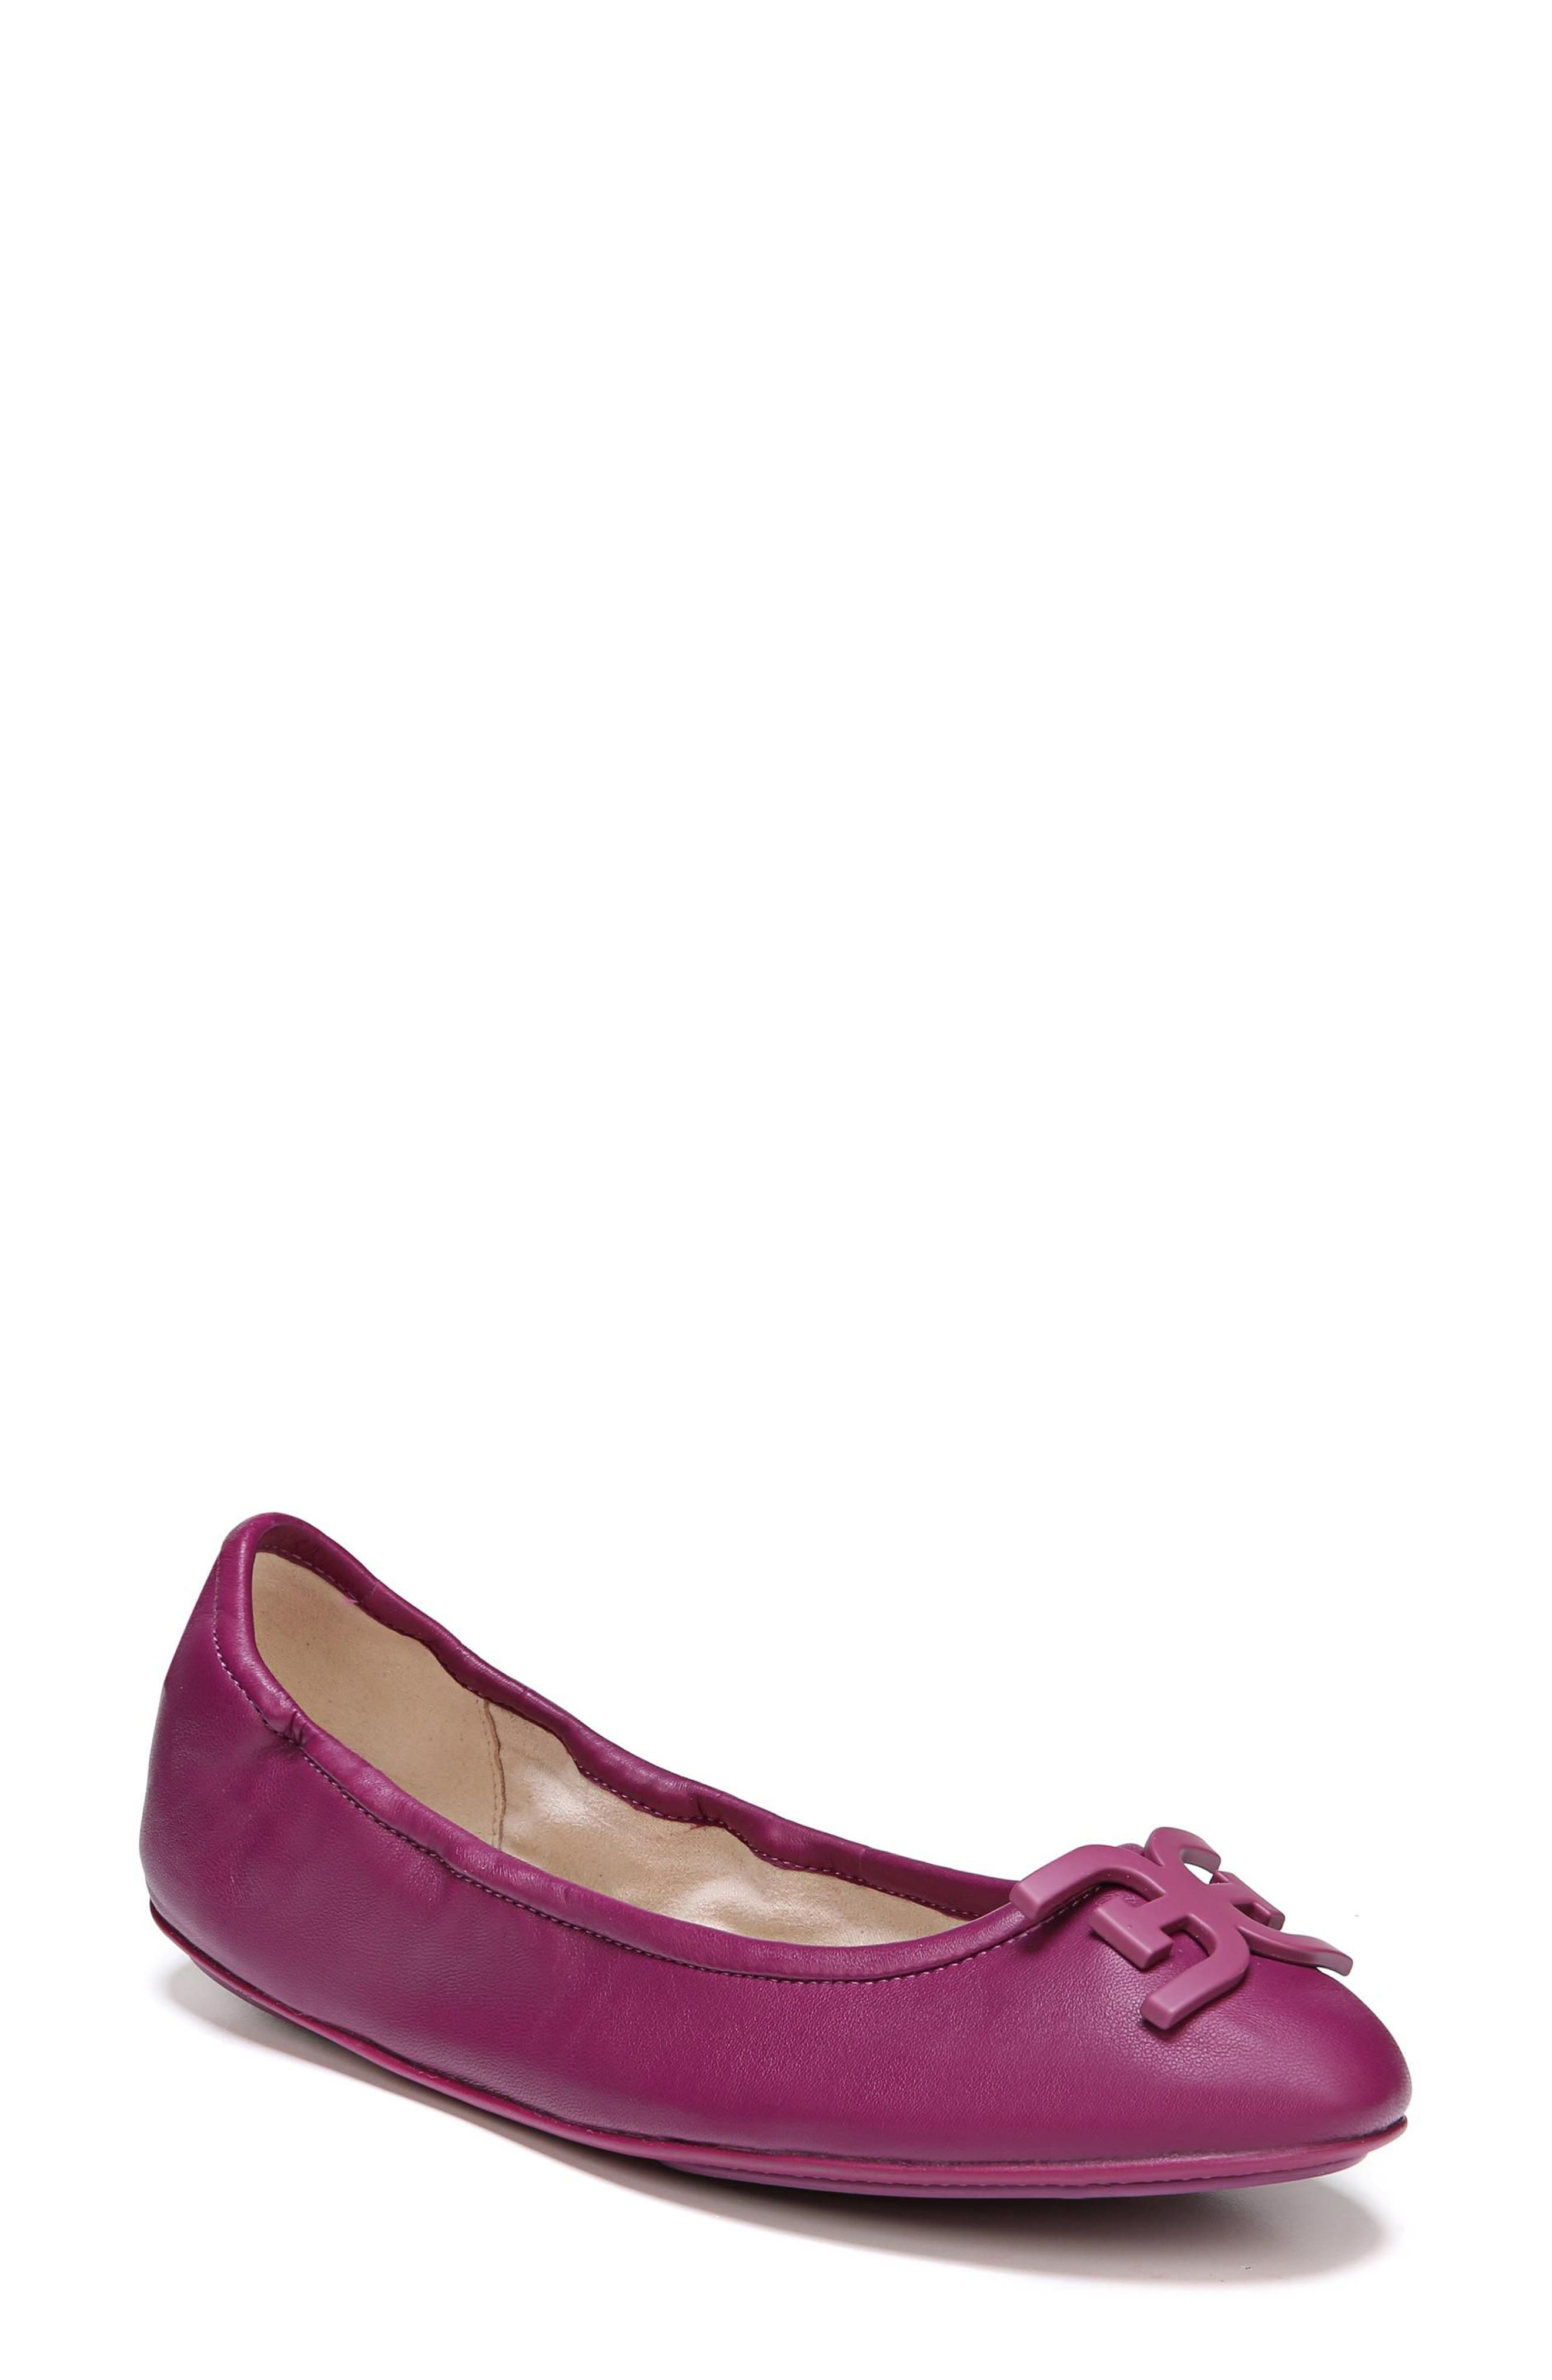 Florence Ballet Flat,                         Main,                         color, Mulberry Pink Leather